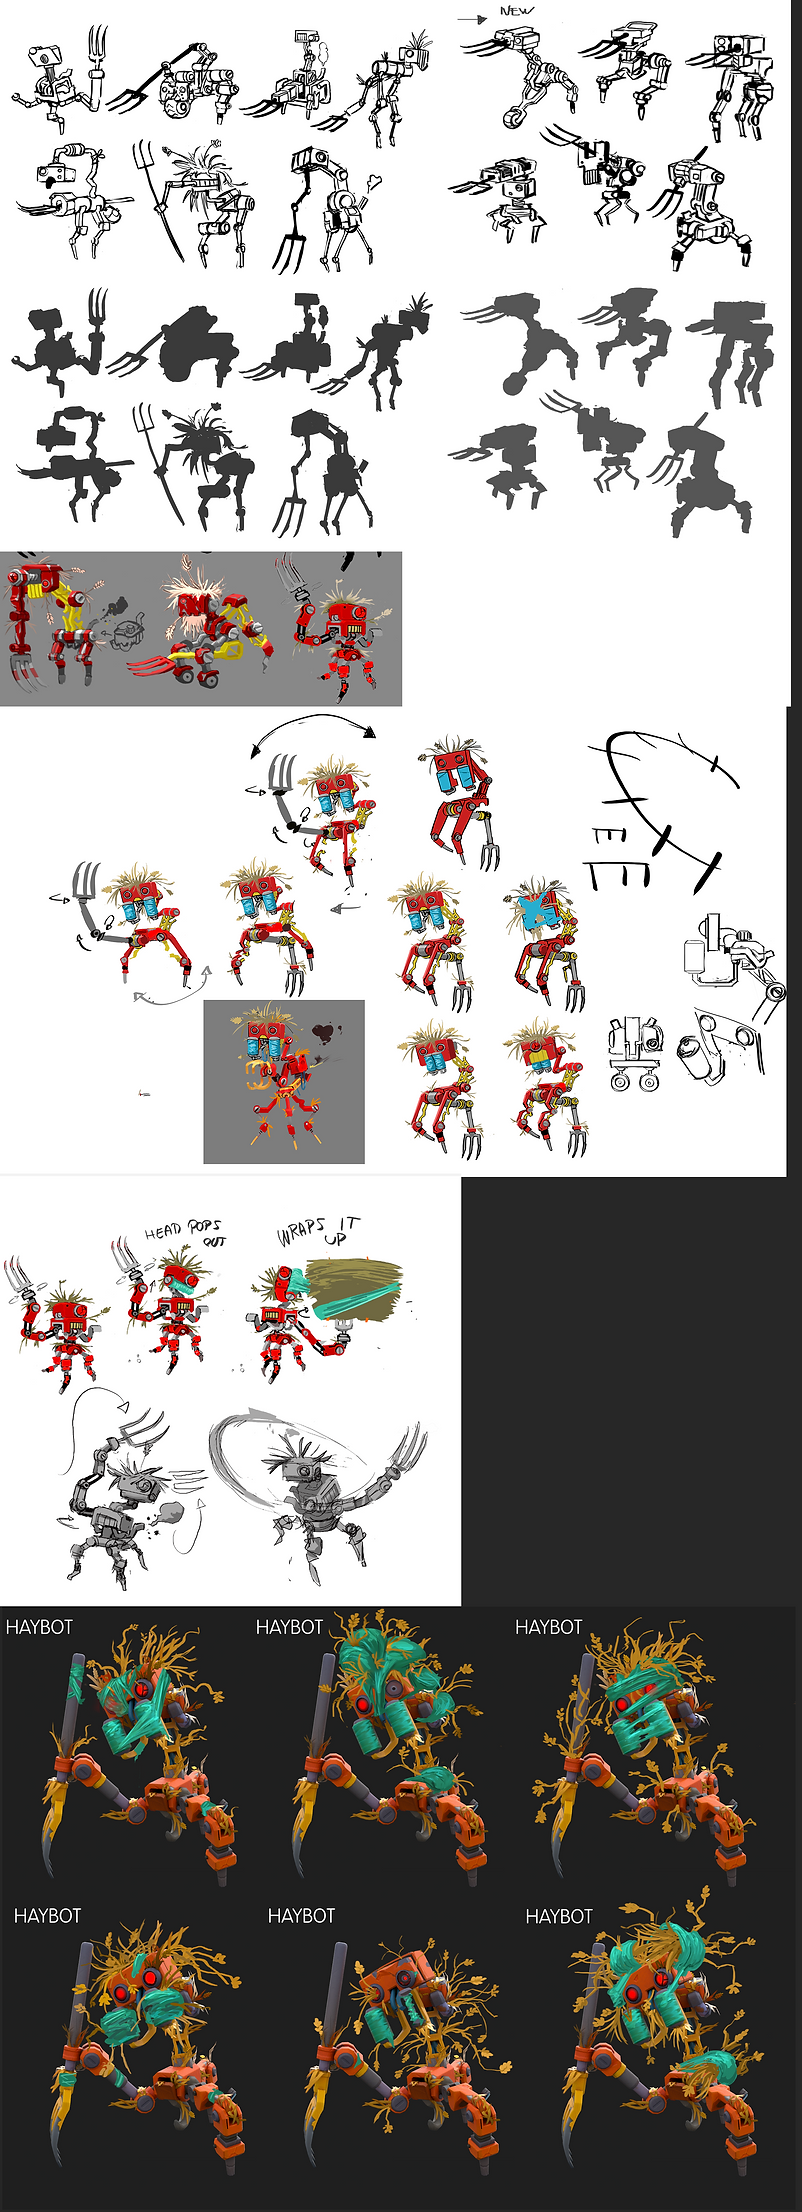 haybot explorations Concept.png